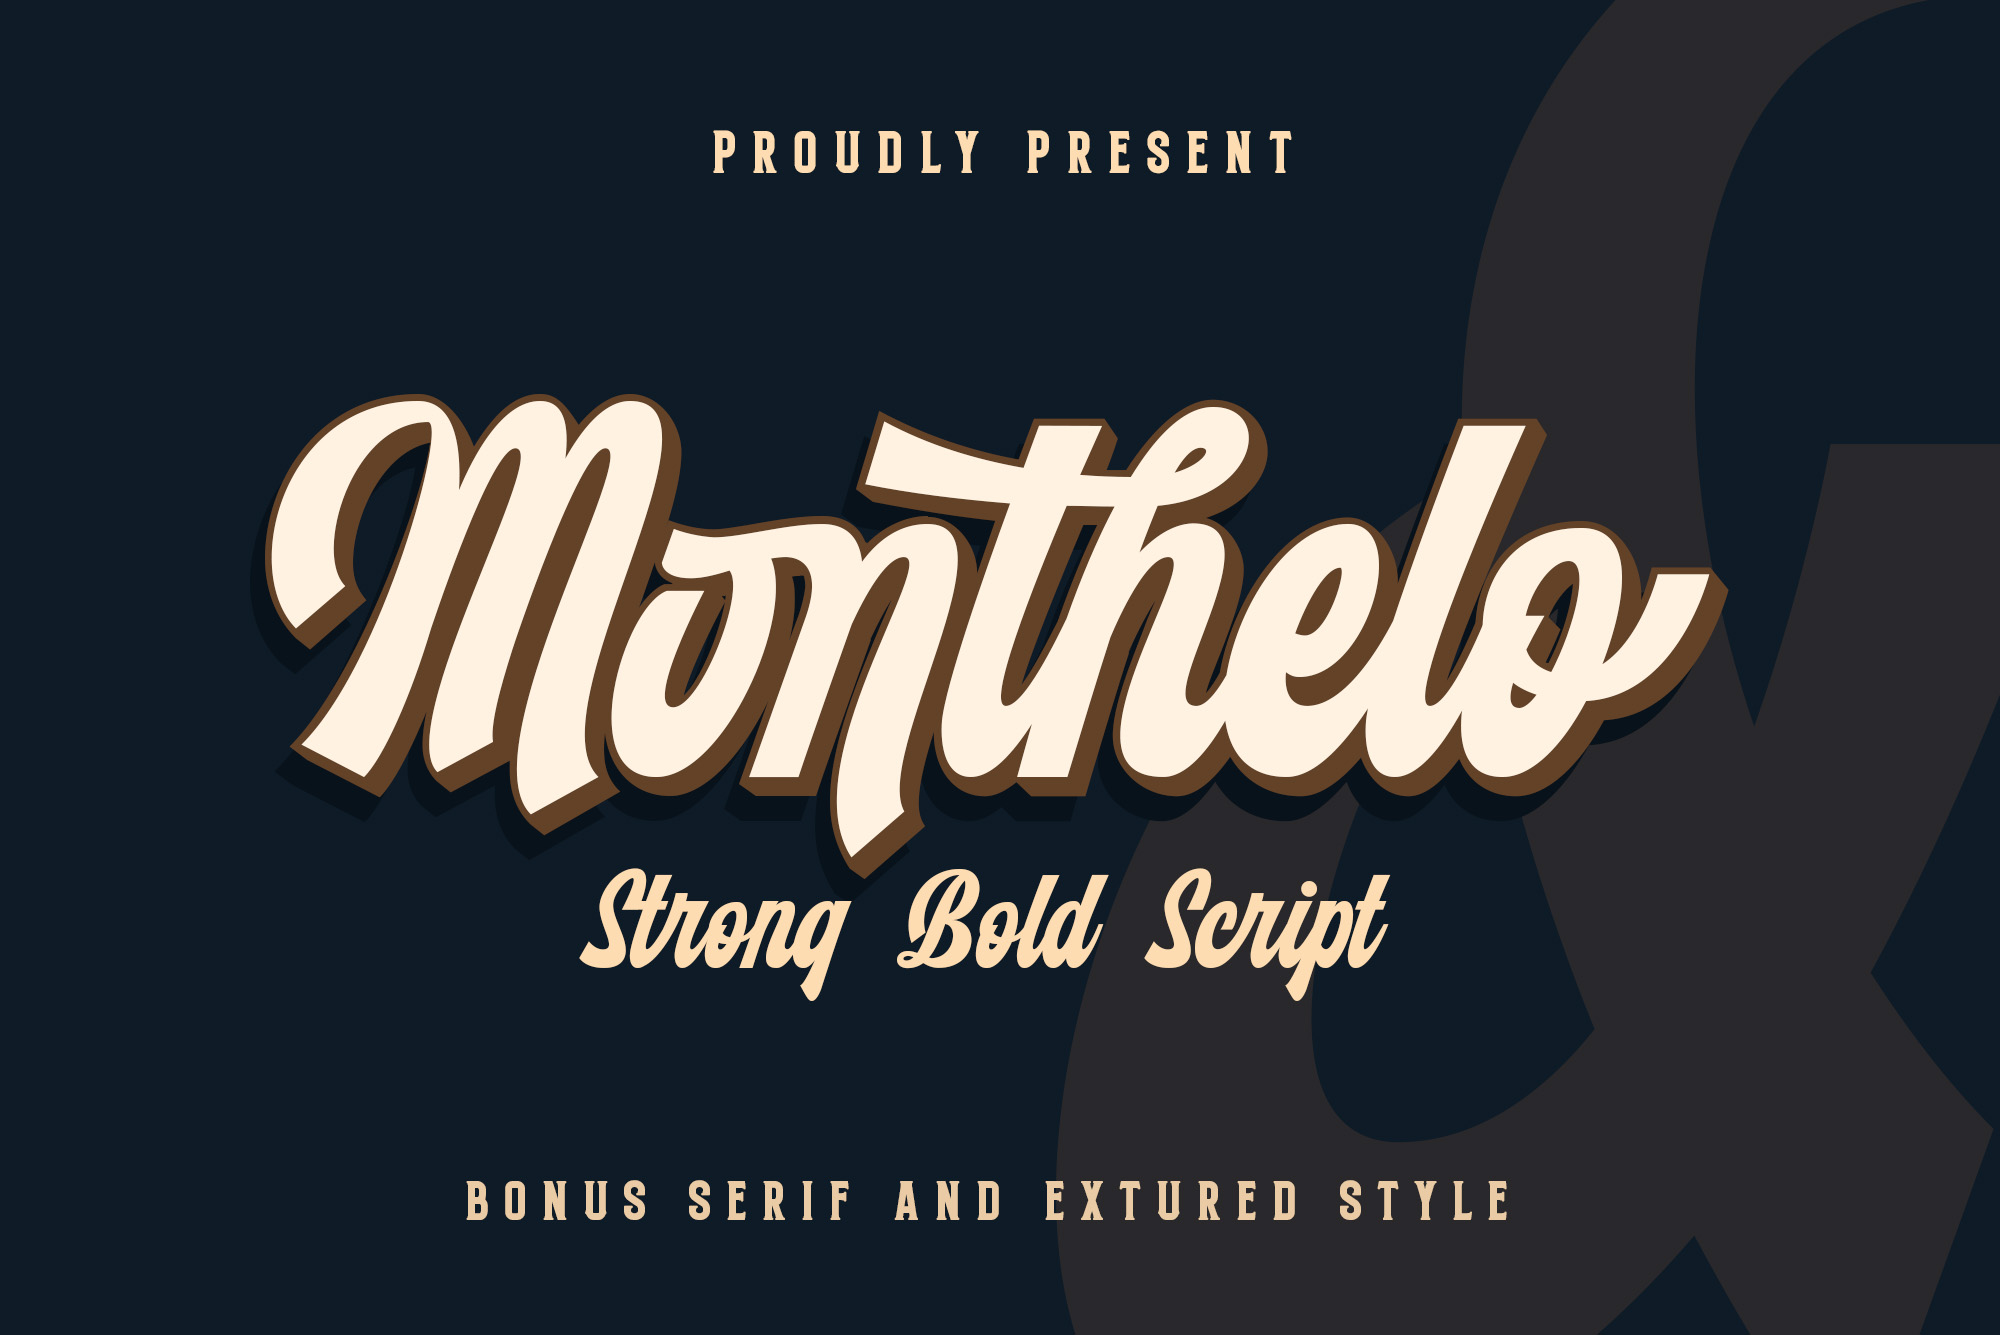 Monthelo - 3 font example image 1